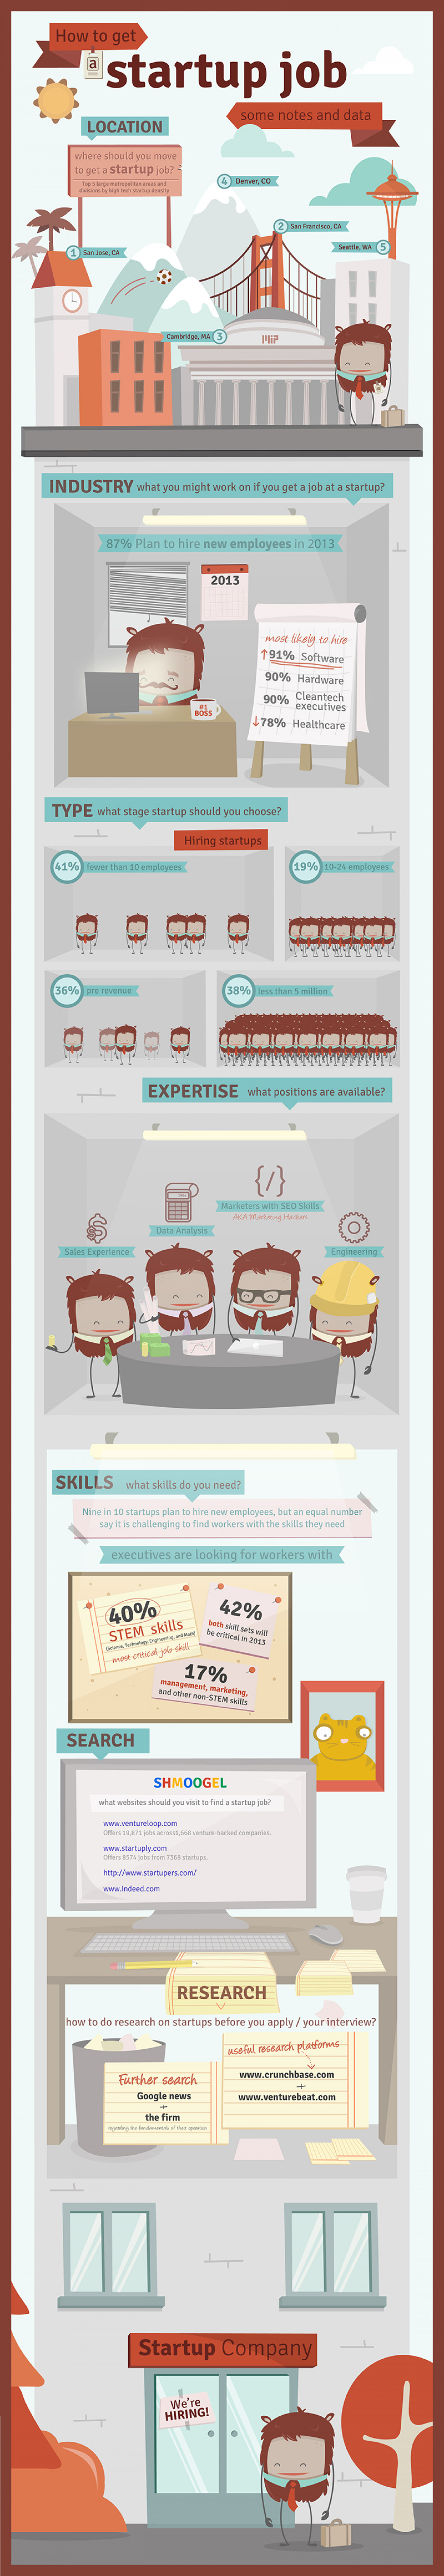 How To Get Startup Job Some Notes And Data Infographic